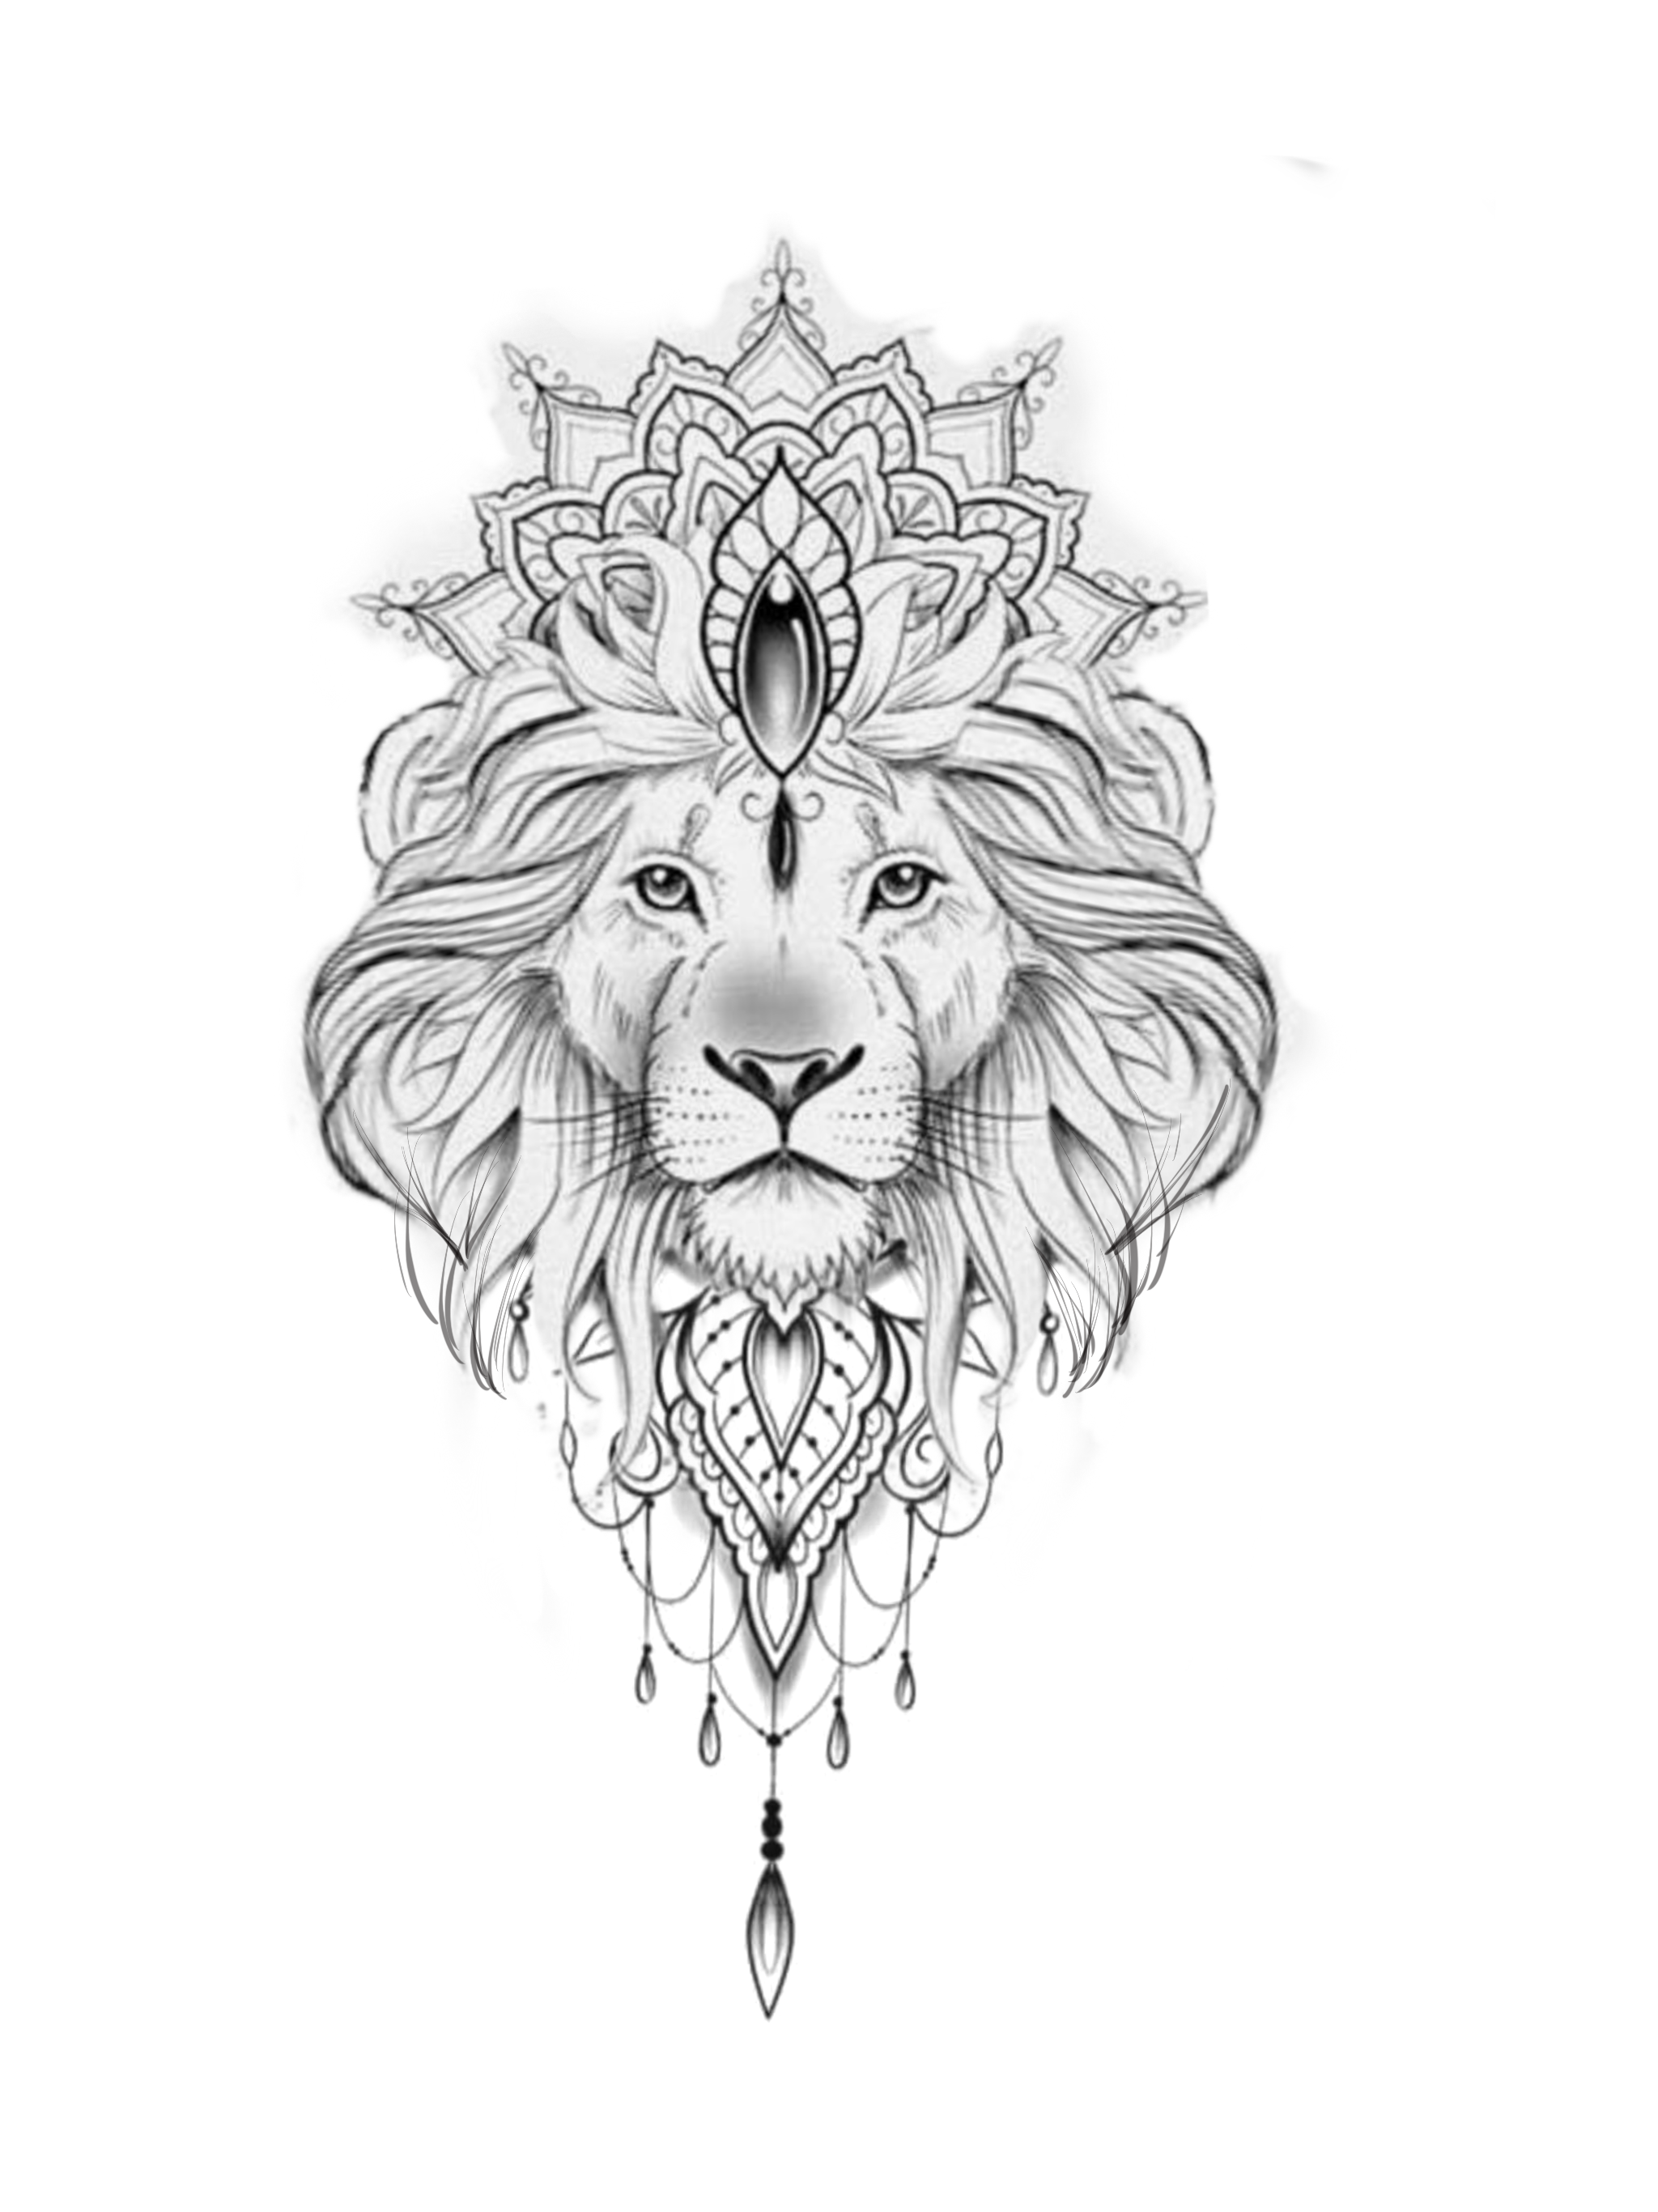 This Pattern In A Crown In 2020 Lion Forearm Tattoos Lion Tattoo Lion Head Tattoos